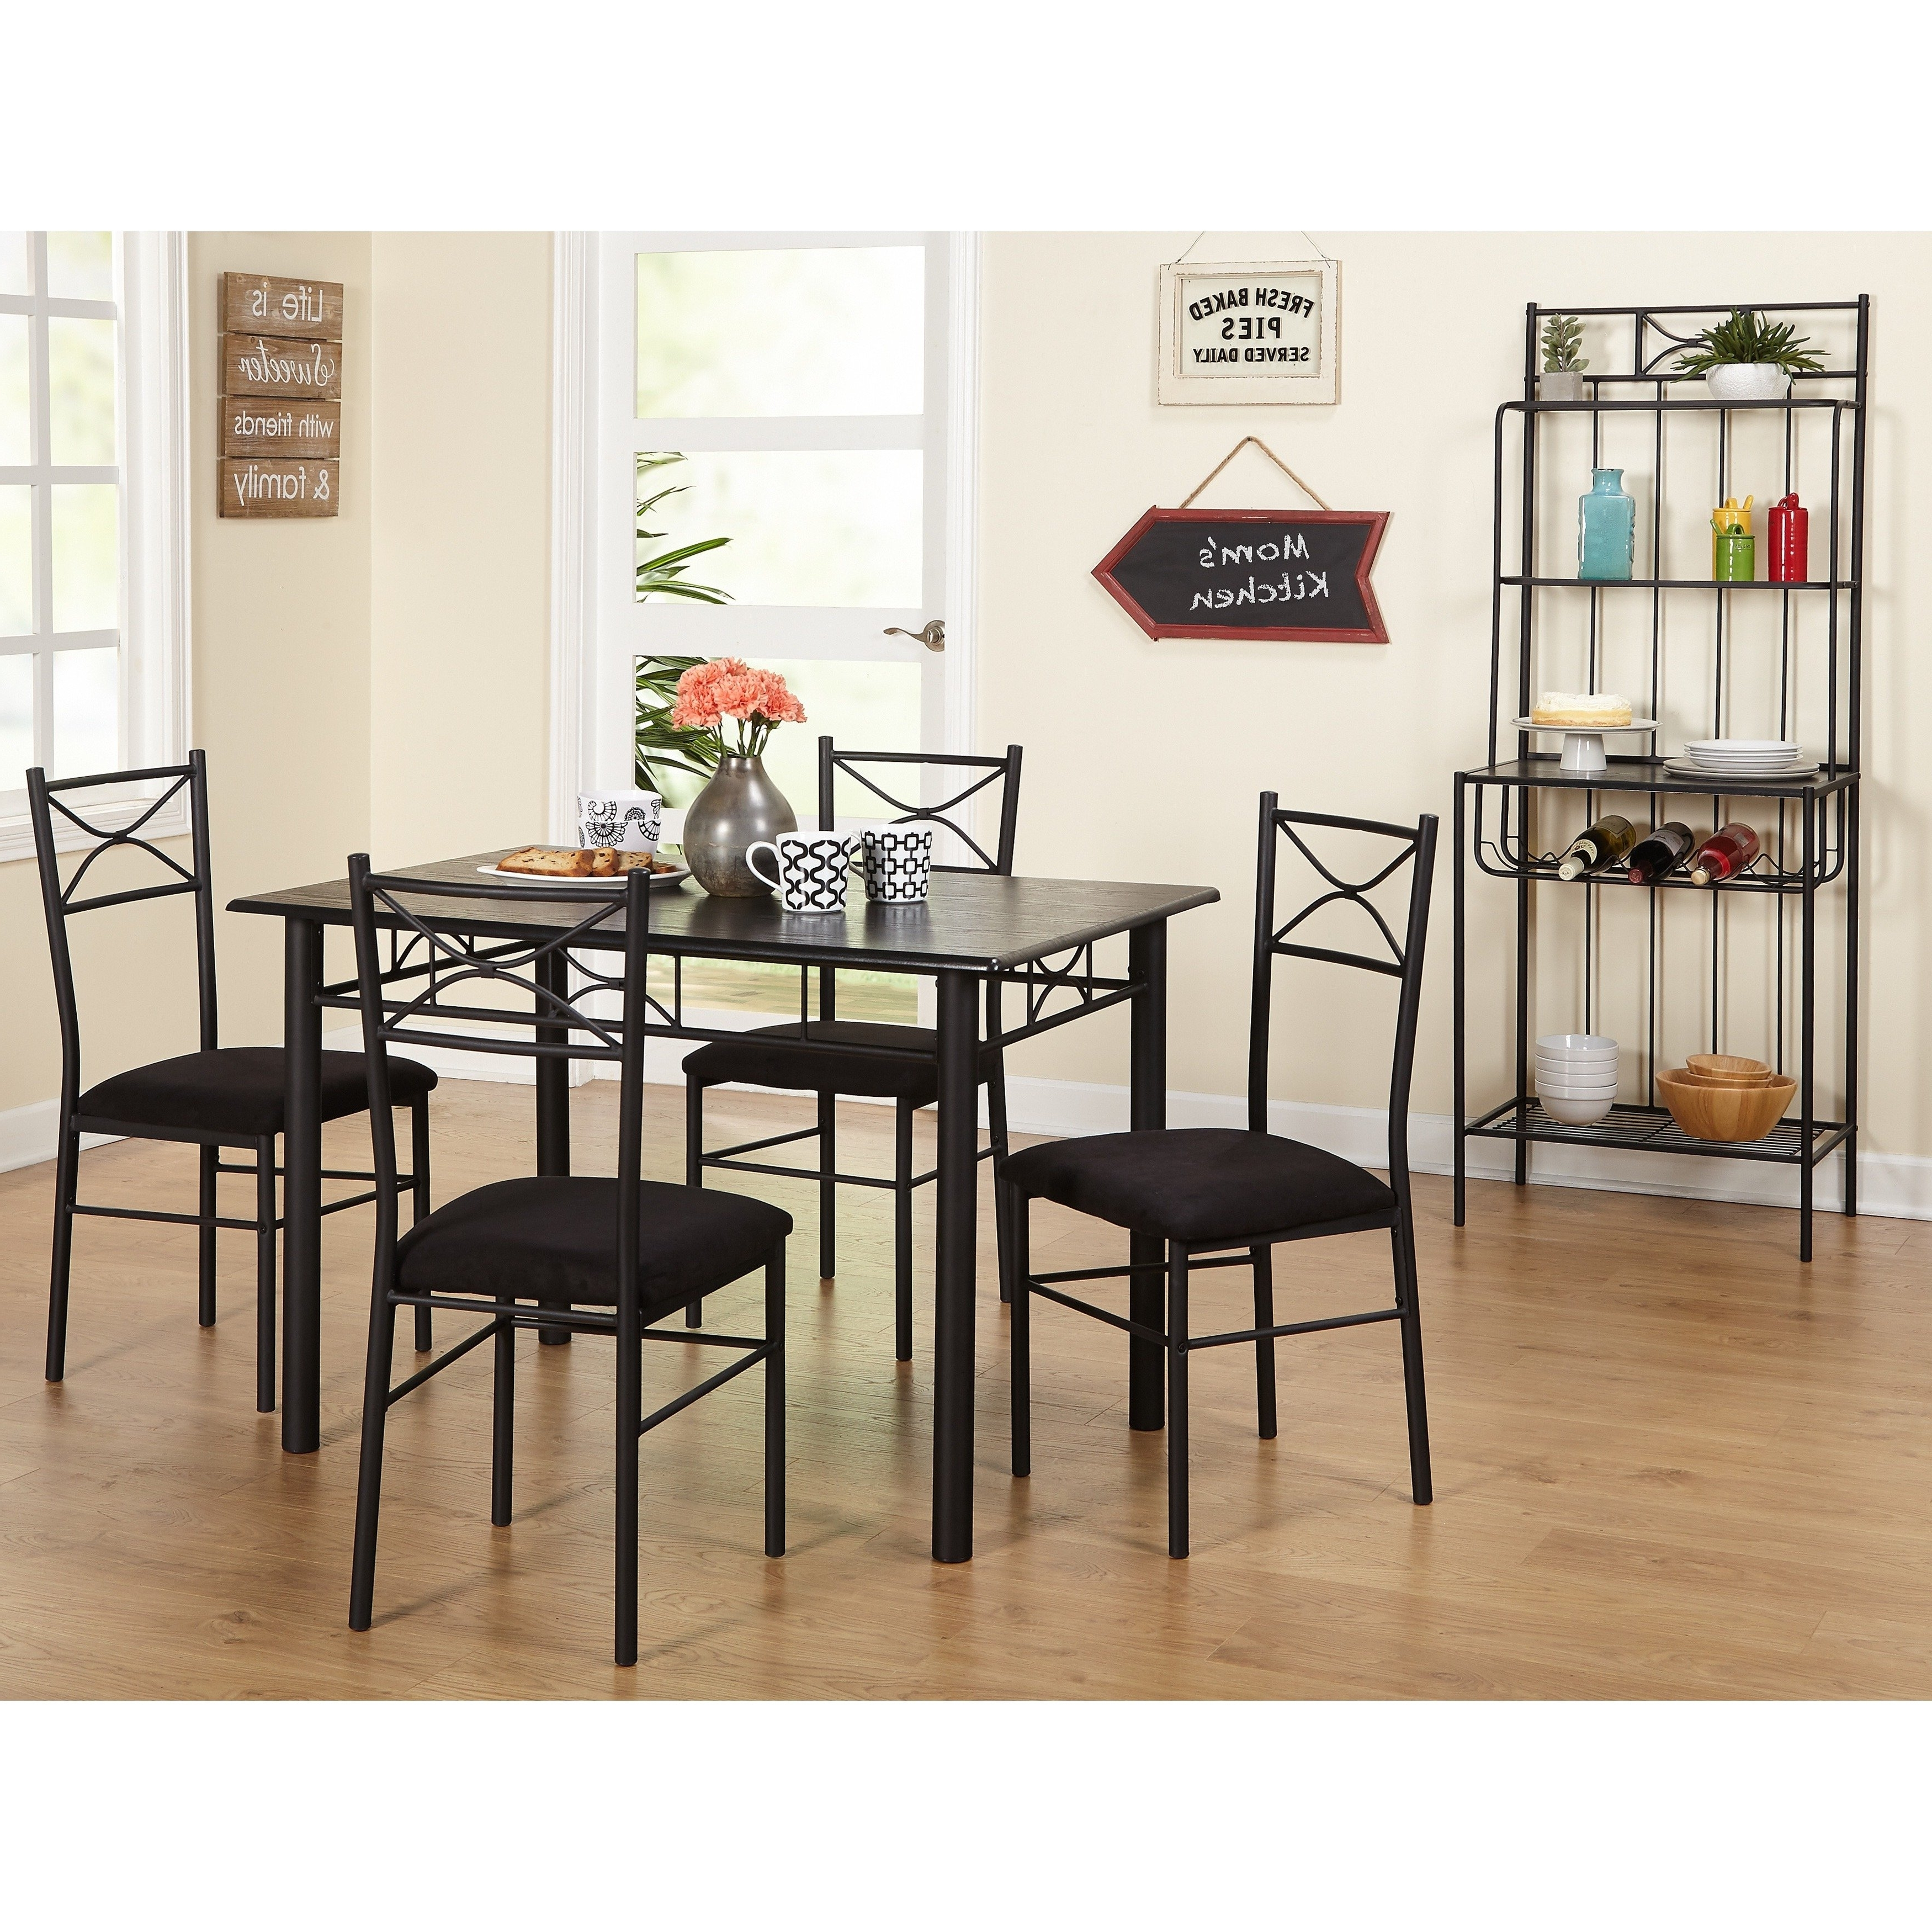 Shop Simple Living Valencia 6 Piece Metal Dining Set With Baker's With Most Current Valencia 3 Piece Counter Sets With Bench (View 4 of 25)